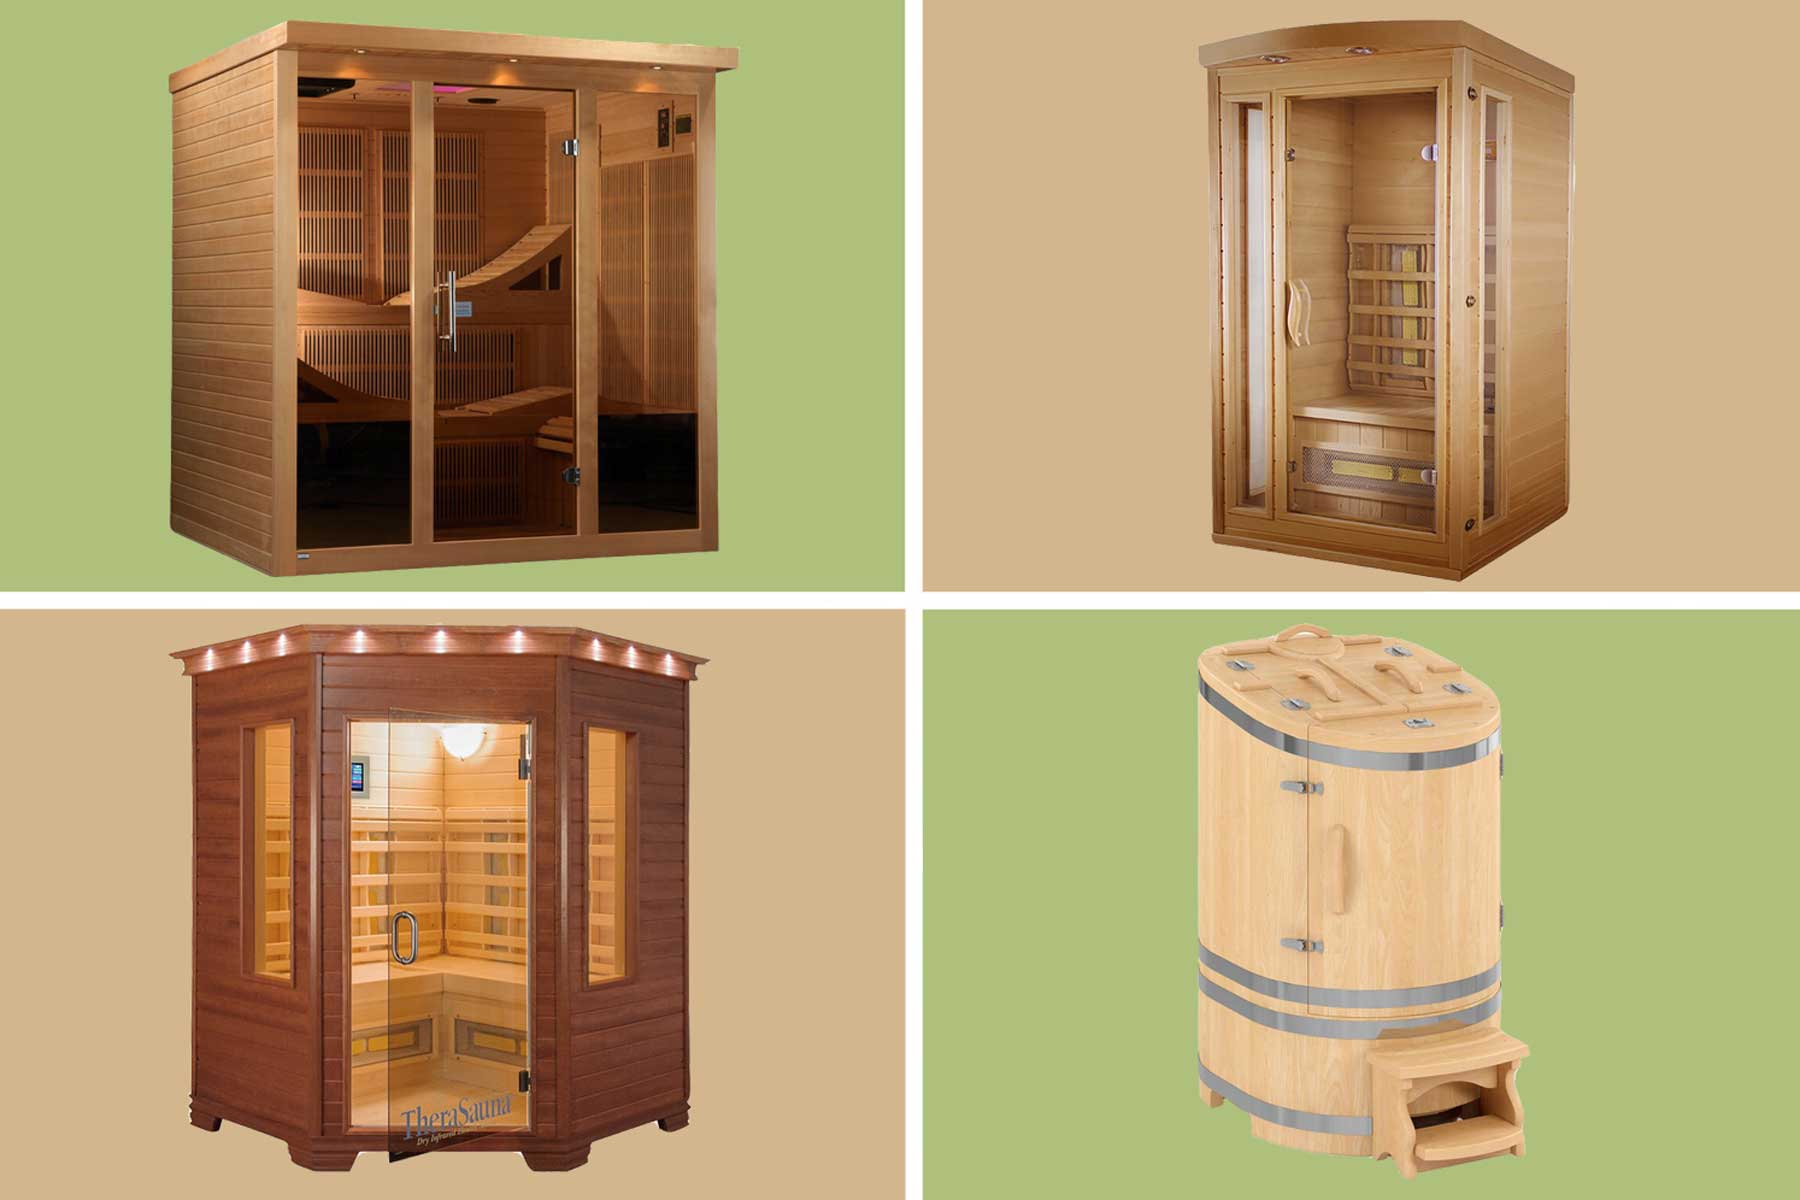 Home saunas from Wayfair